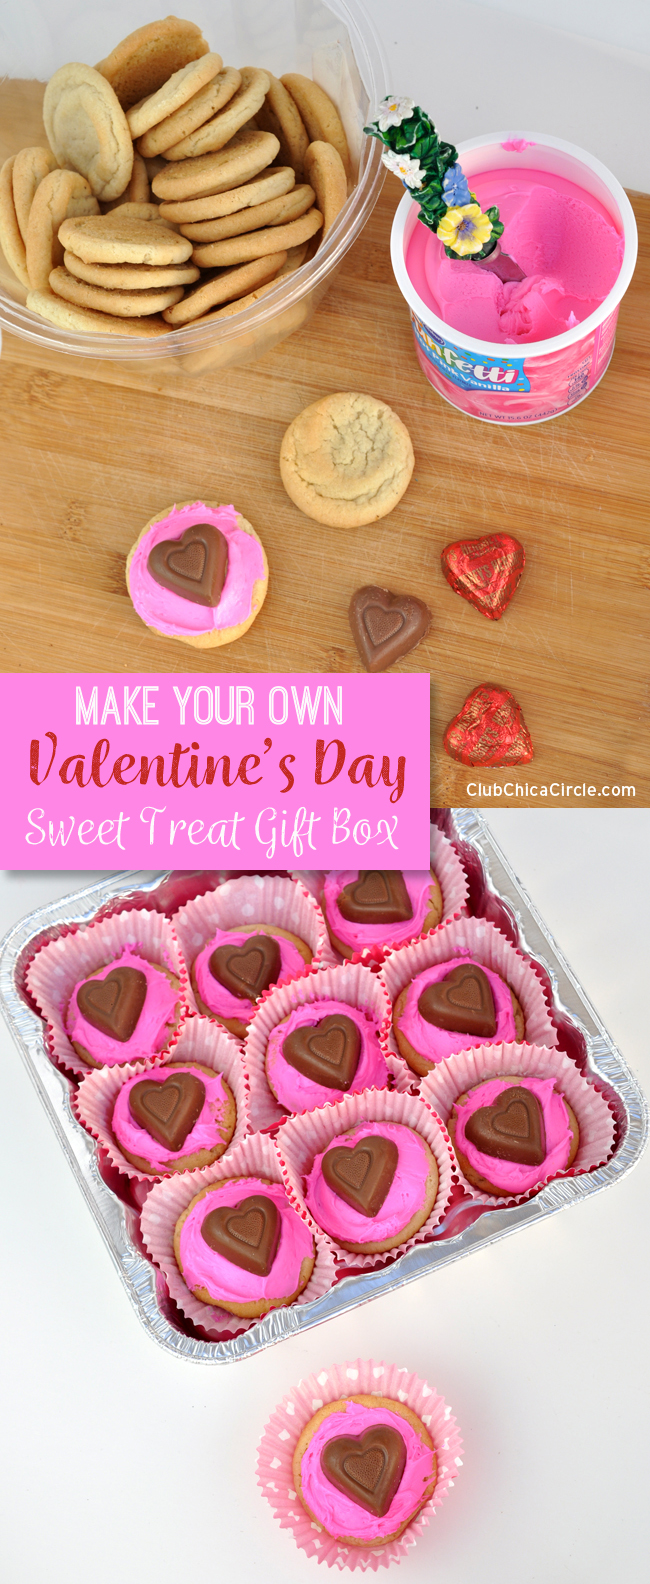 Make your own Valentine's Day Cookie Gift Box